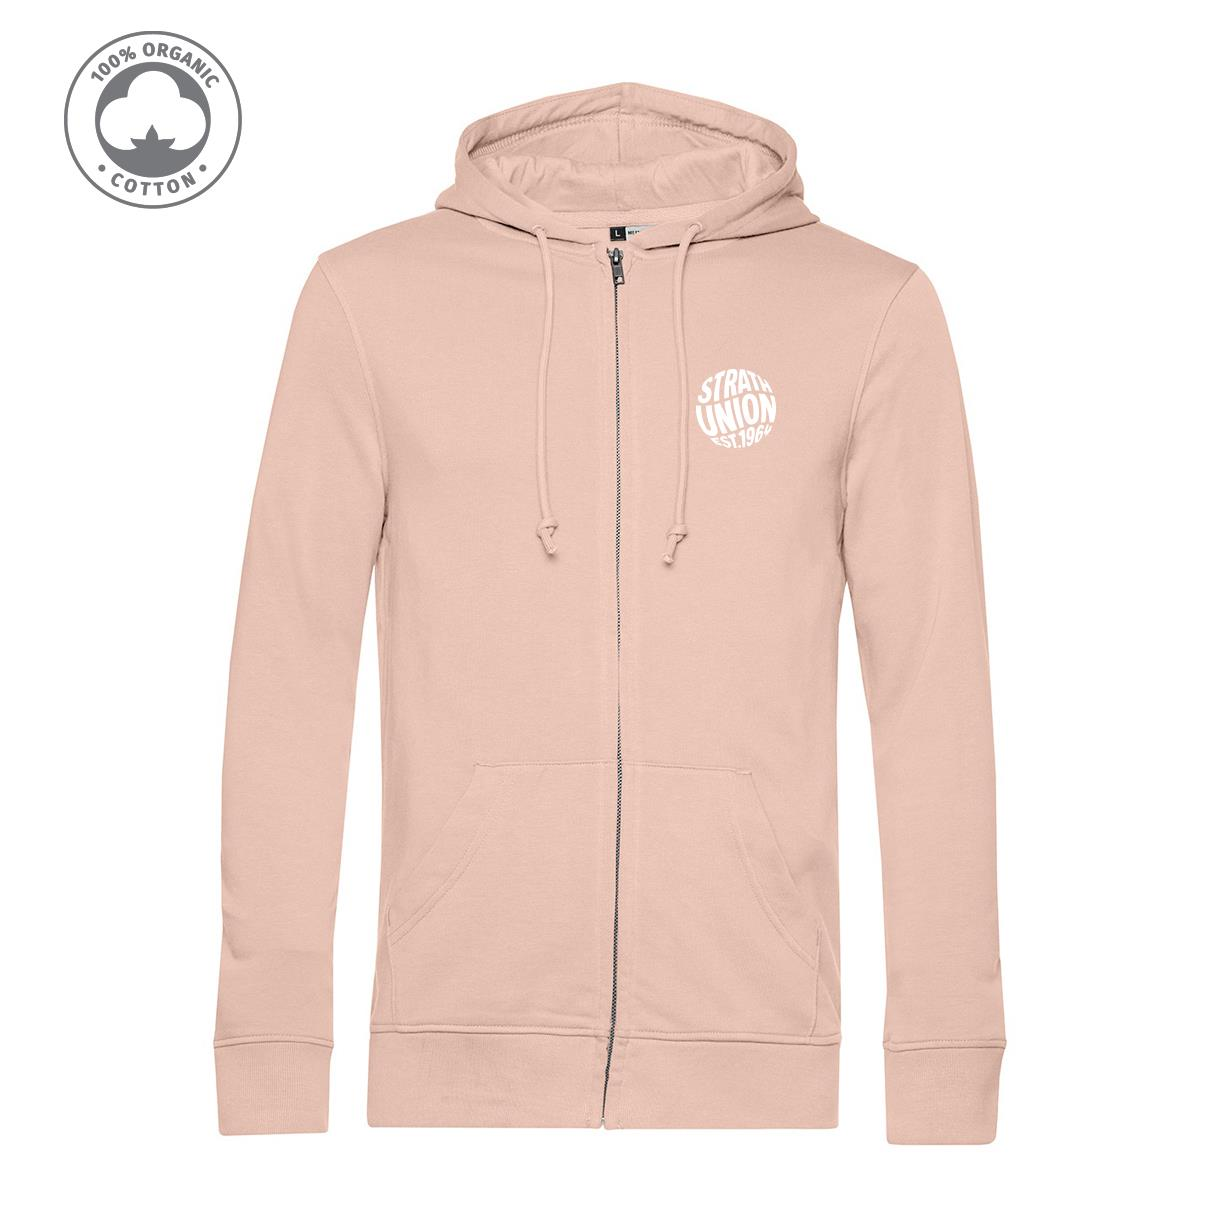 Organic Zipped Embroidered Hoodie